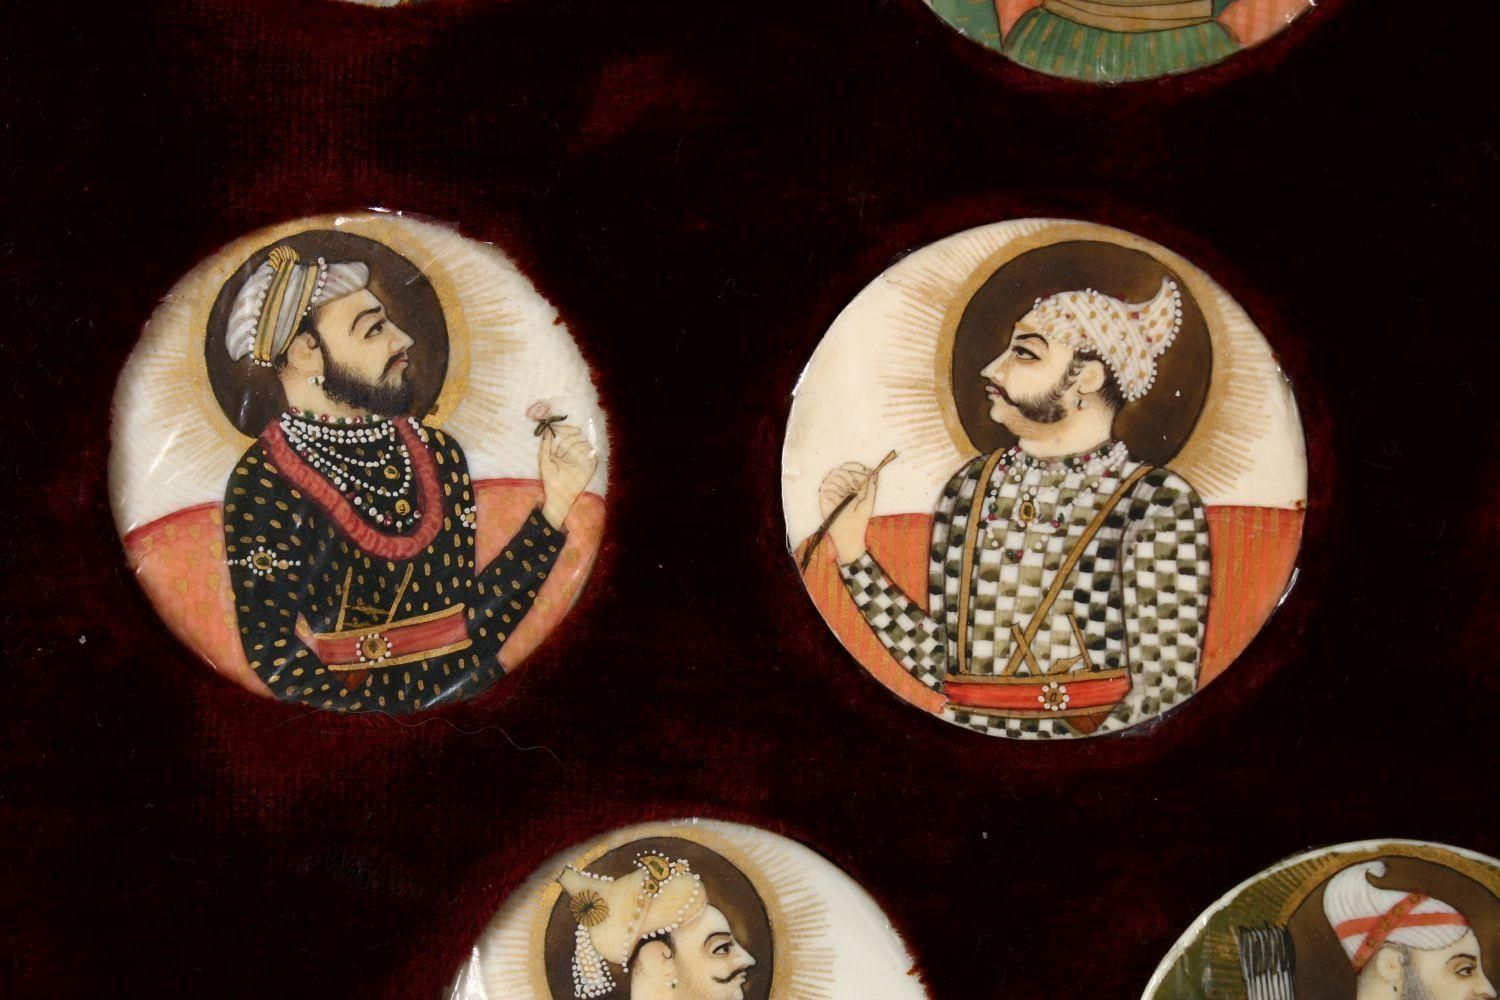 A BOXED SET OF THIRTEEN 18TH/19TH CENTURY PERSIAN CARVED & PAINTED IVORY MINIATURES, each of the - Image 8 of 10